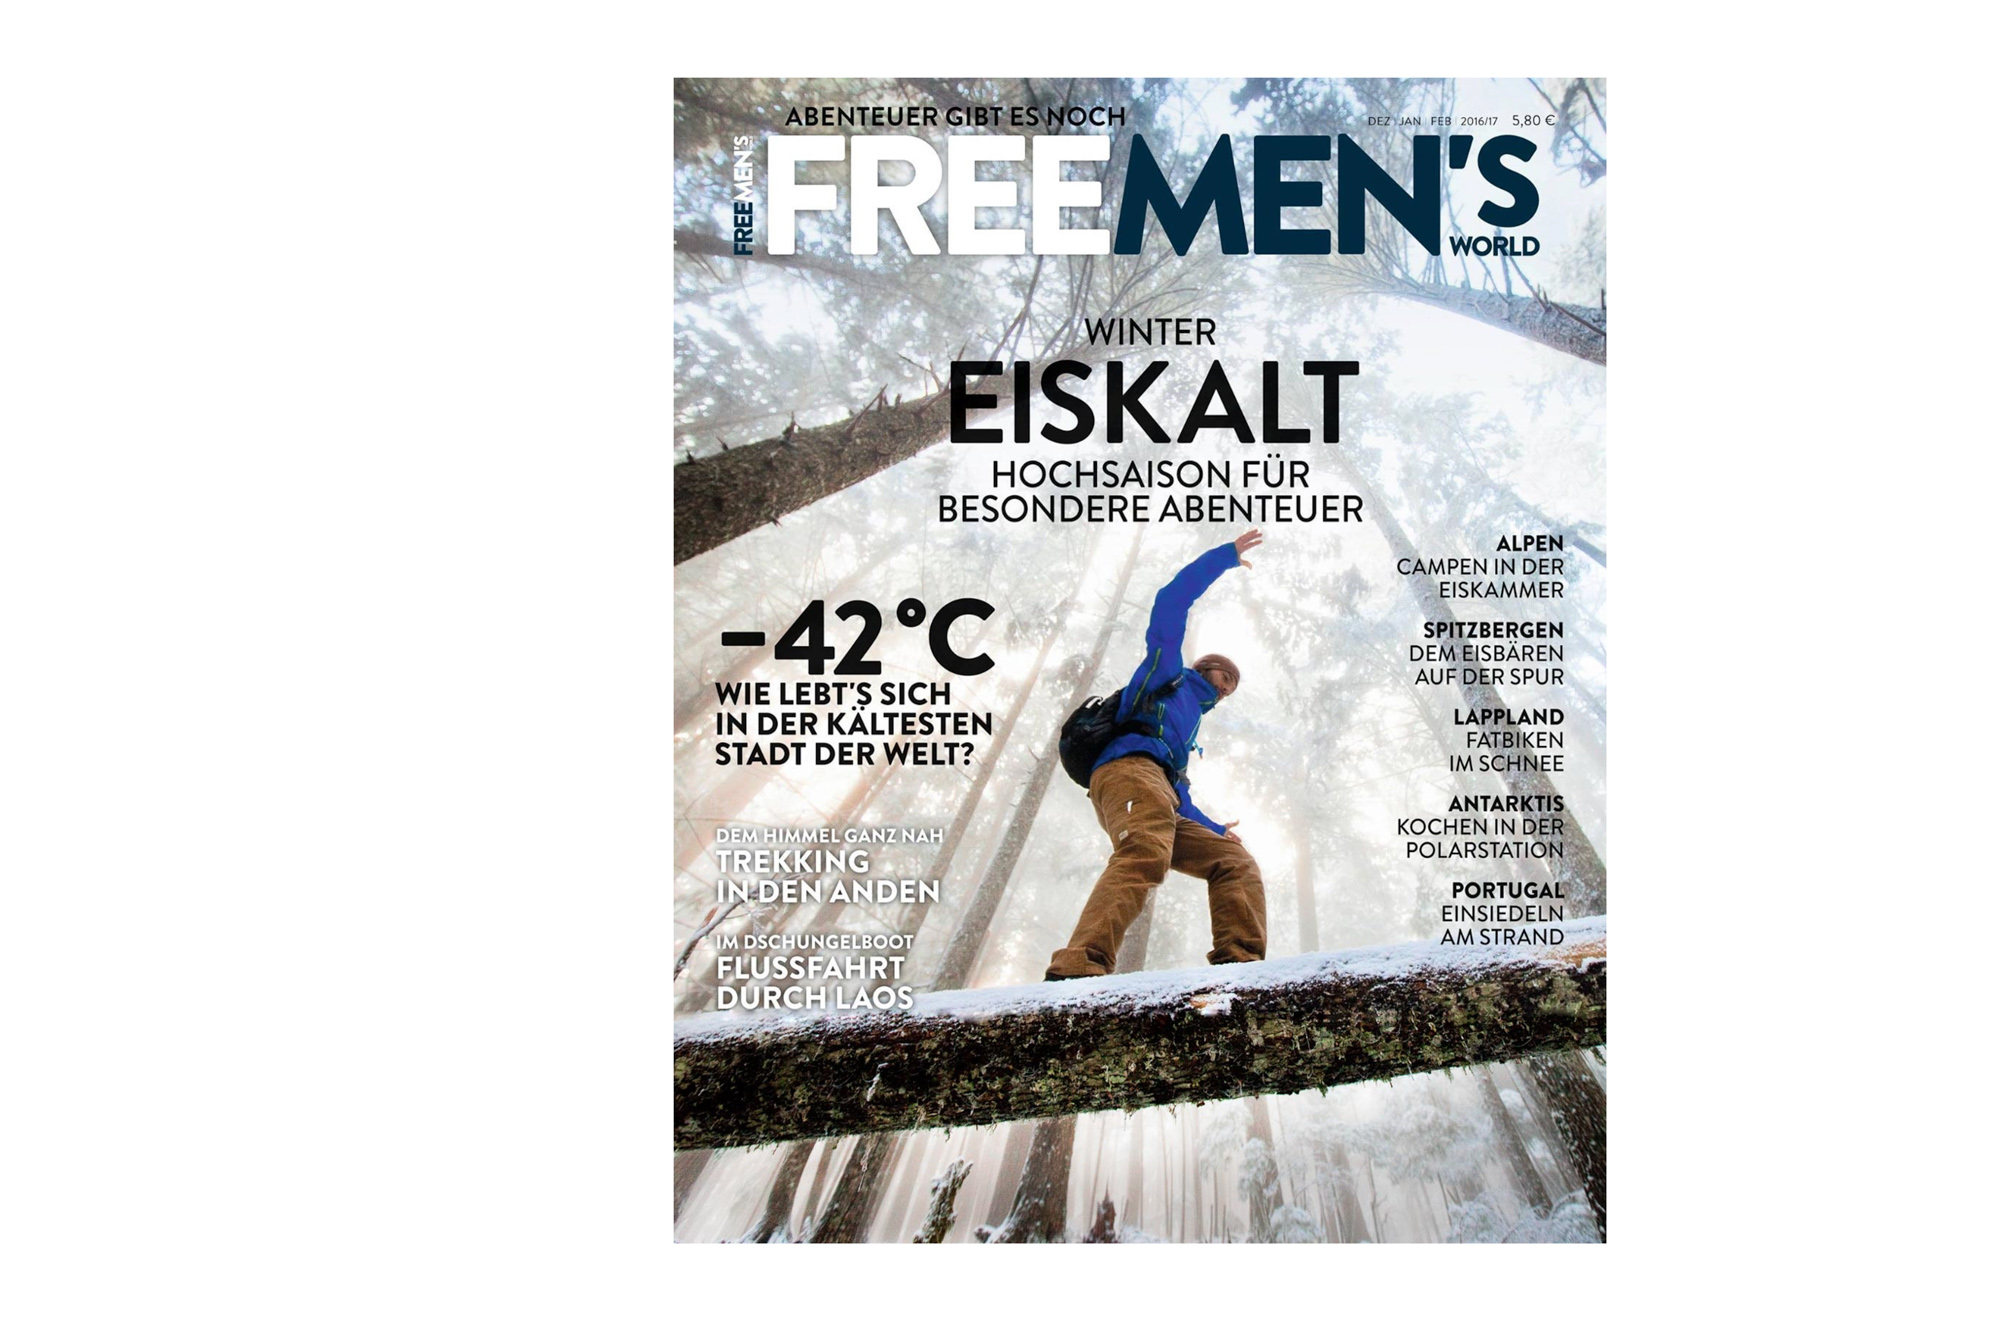 freemens-world-cover-german-outdoor.JPG